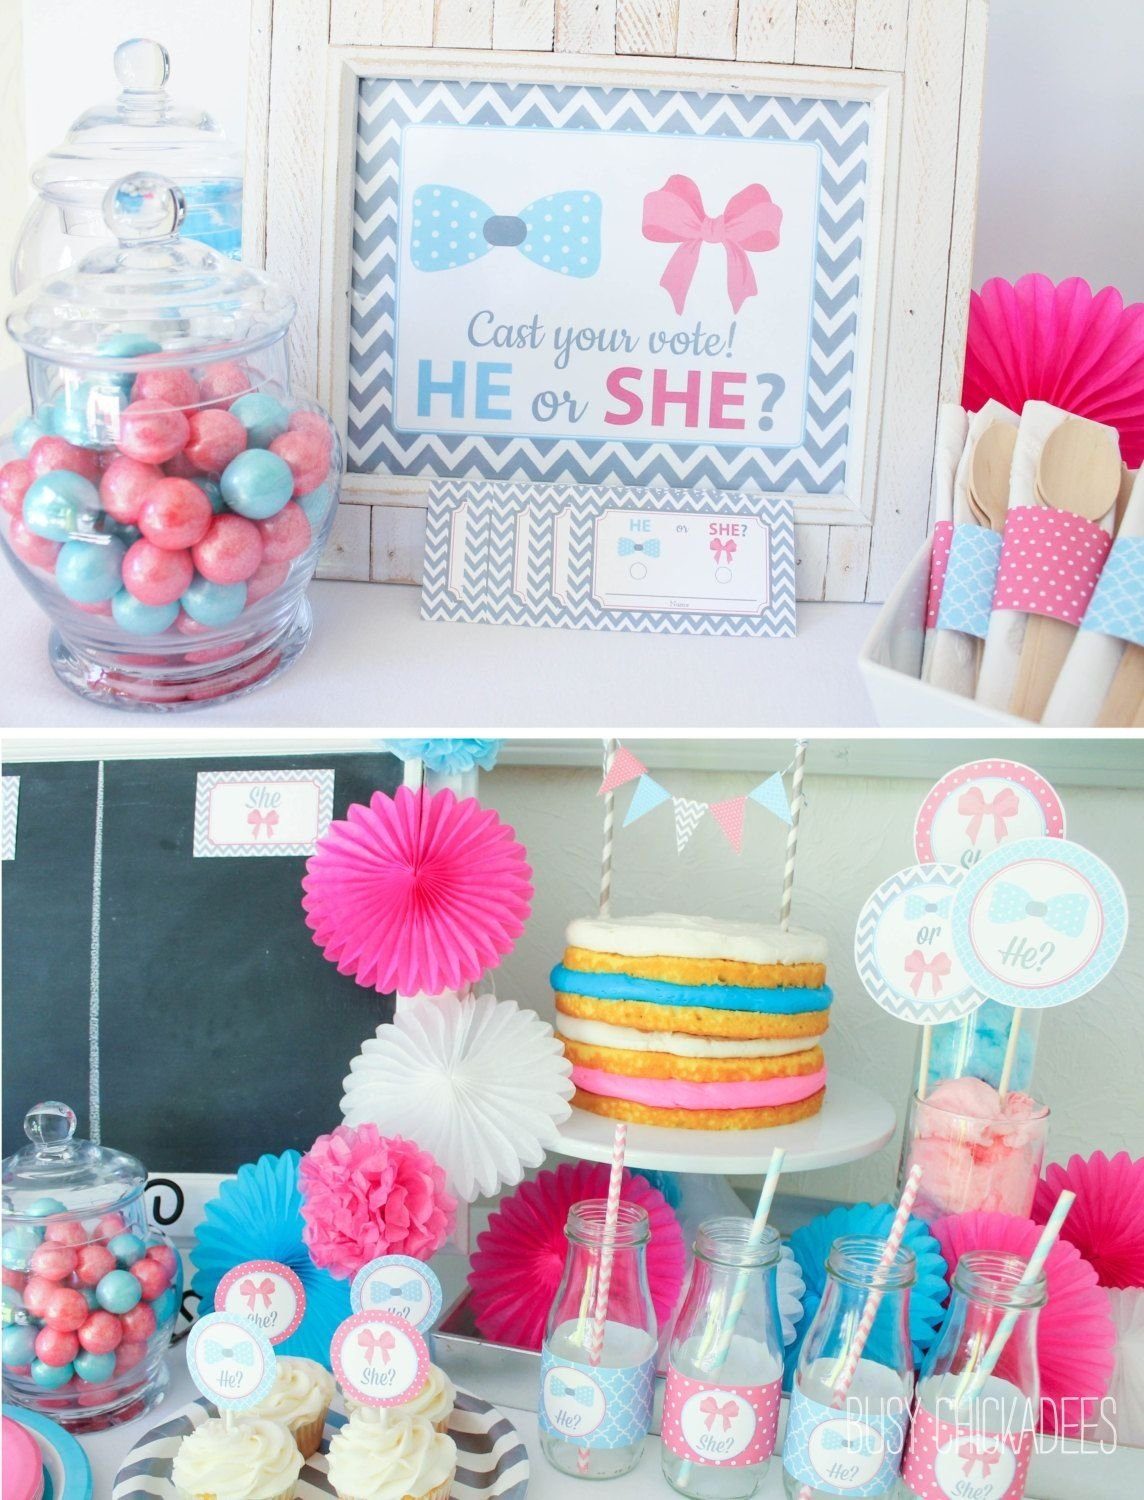 10 Ideal Gender Reveal Party Decoration Ideas 10 baby gender reveal party ideas gender reveal reveal parties 1 2020